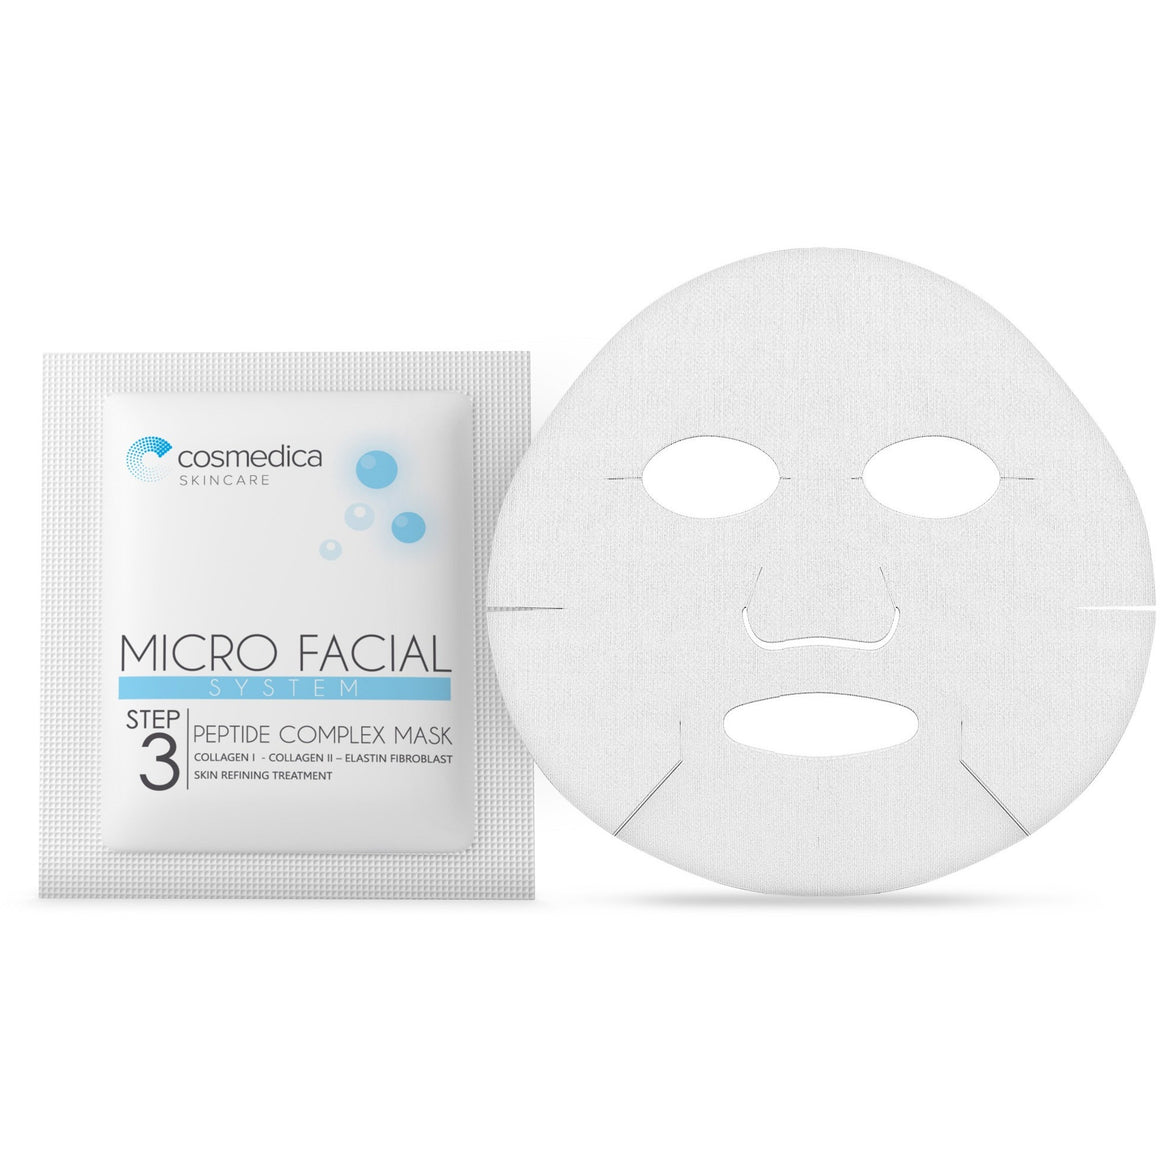 MICRO FACIAL SYSTEM 3 Step At Home Treatment For Glowing Skin - Cosmedica Skincare  - 5